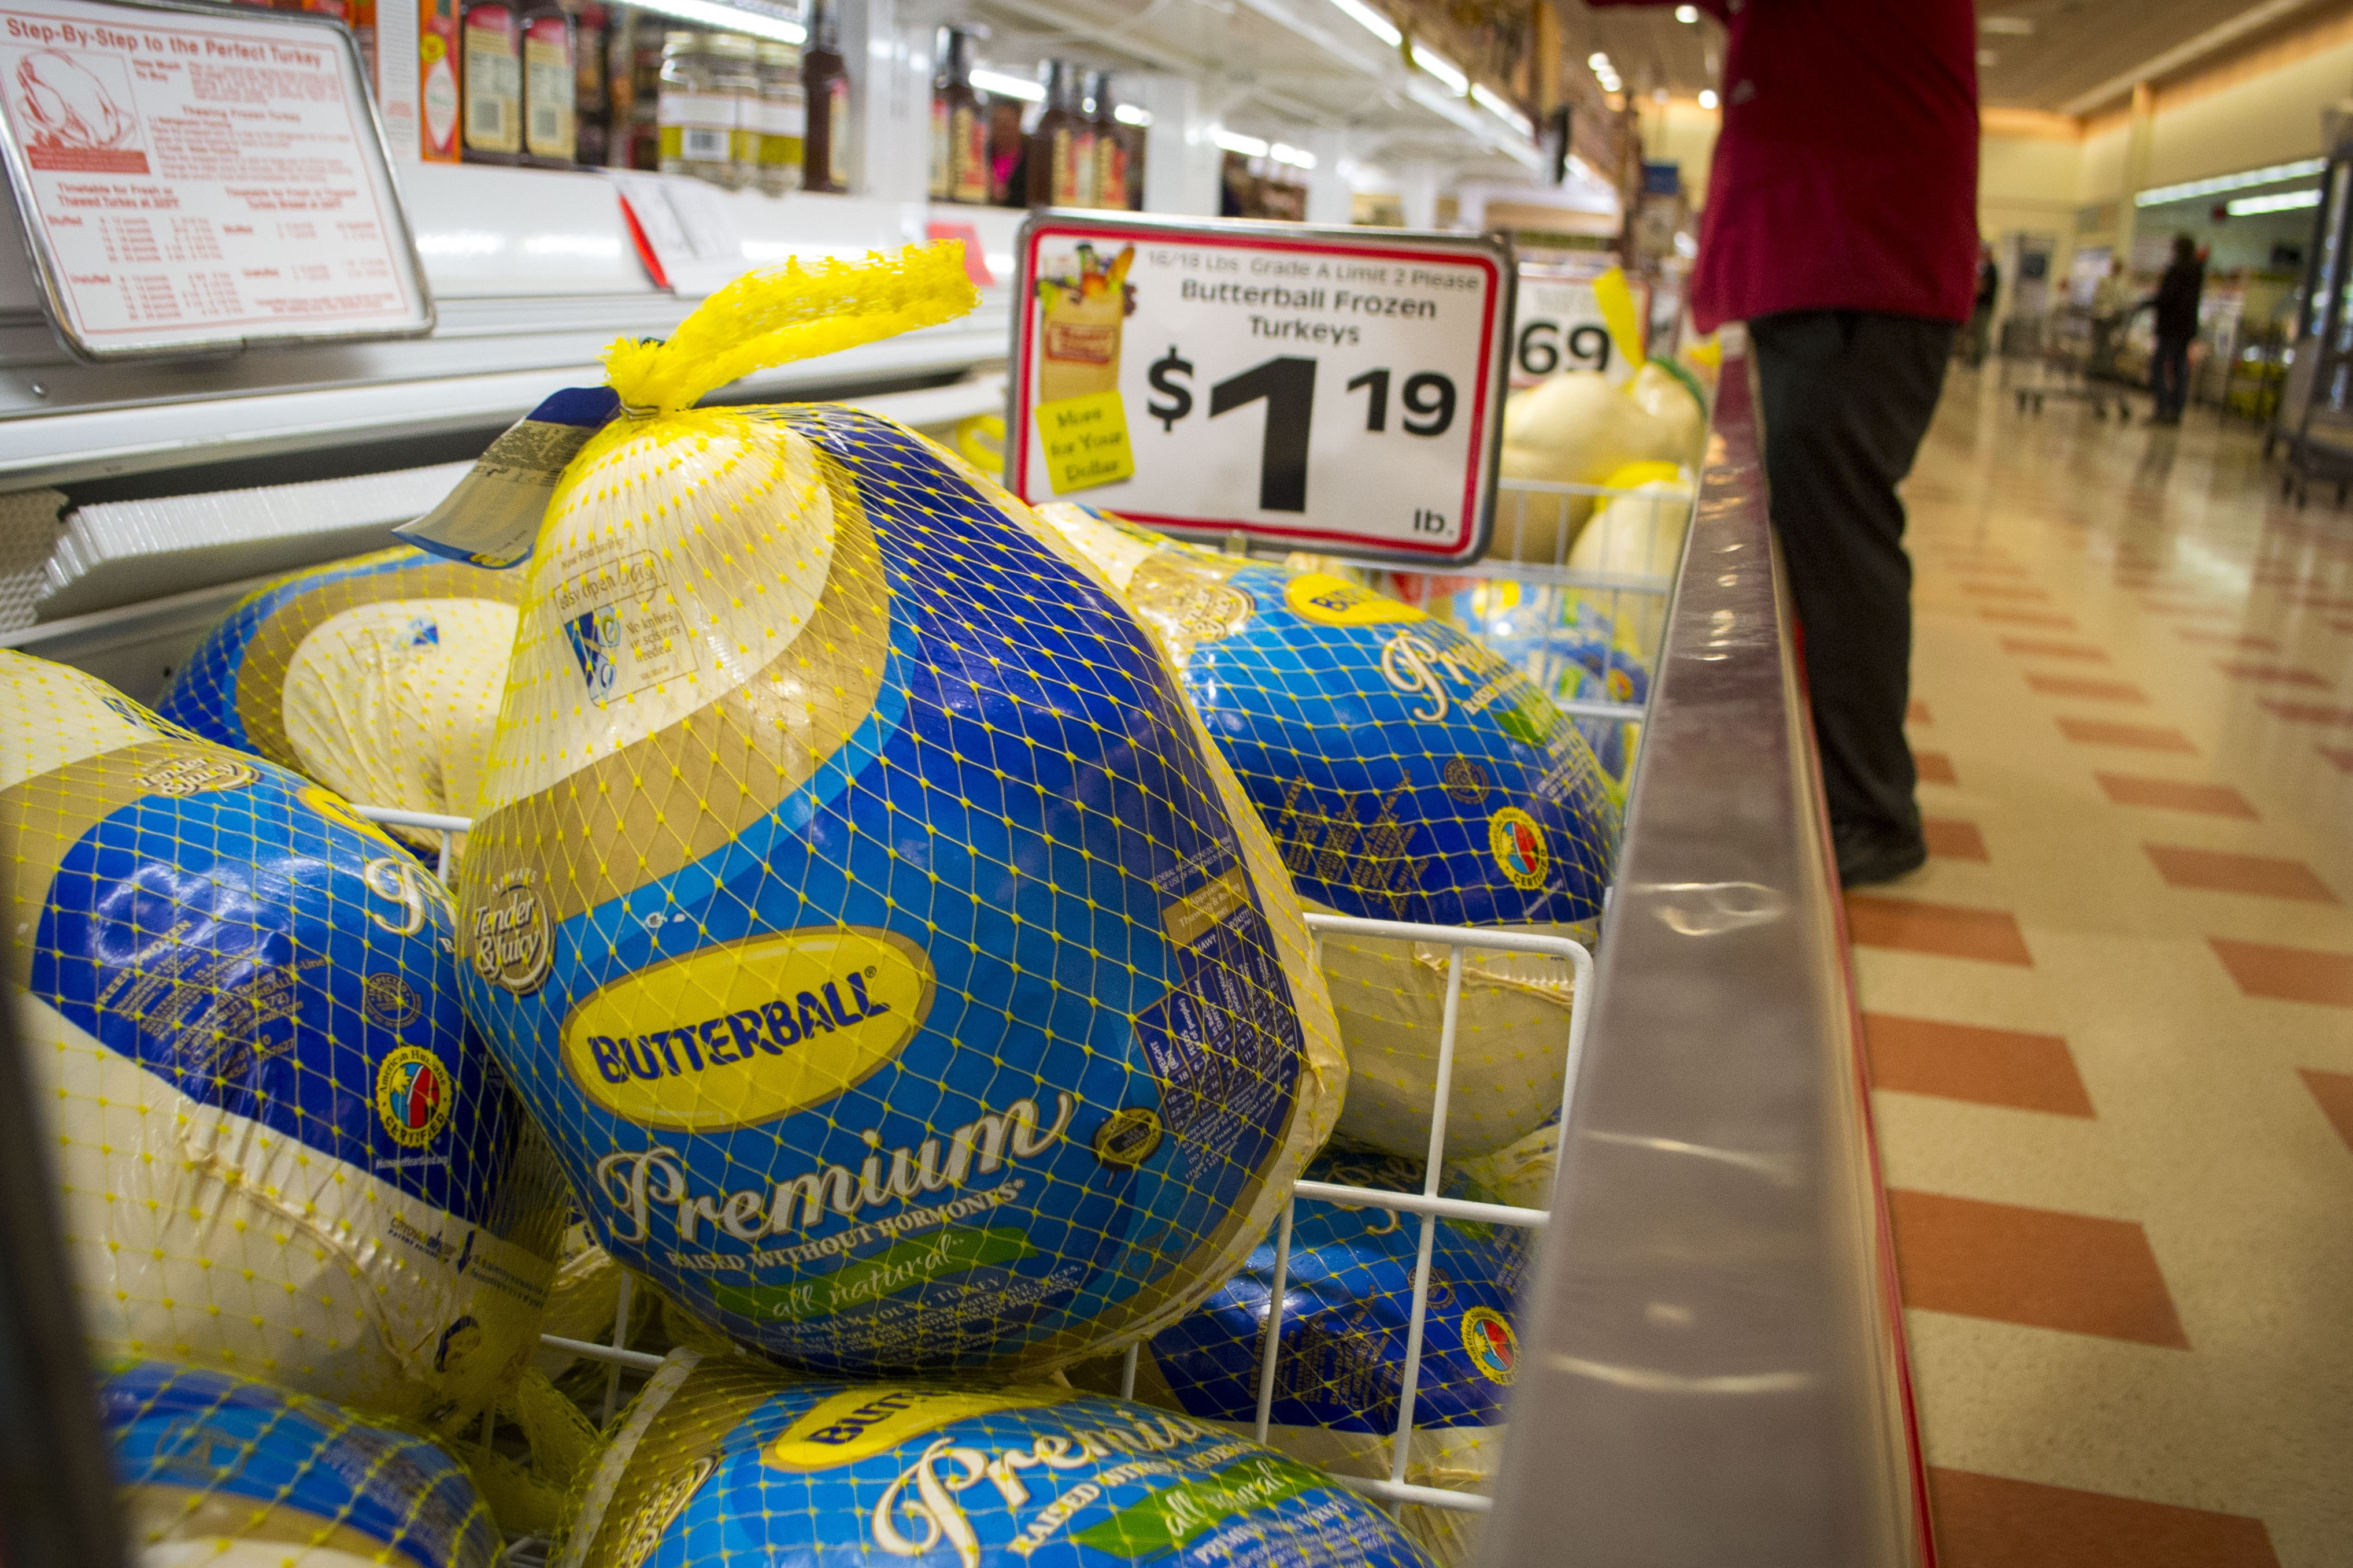 A number of frozen turkeys for sale at Market Basket in Biddeford on Tuesday. The U.S. Department of Agriculture recommends defrosting turkeys in the refrigerator, in cold water or in the microwave. ALAN BENNETT/Journal Tribune